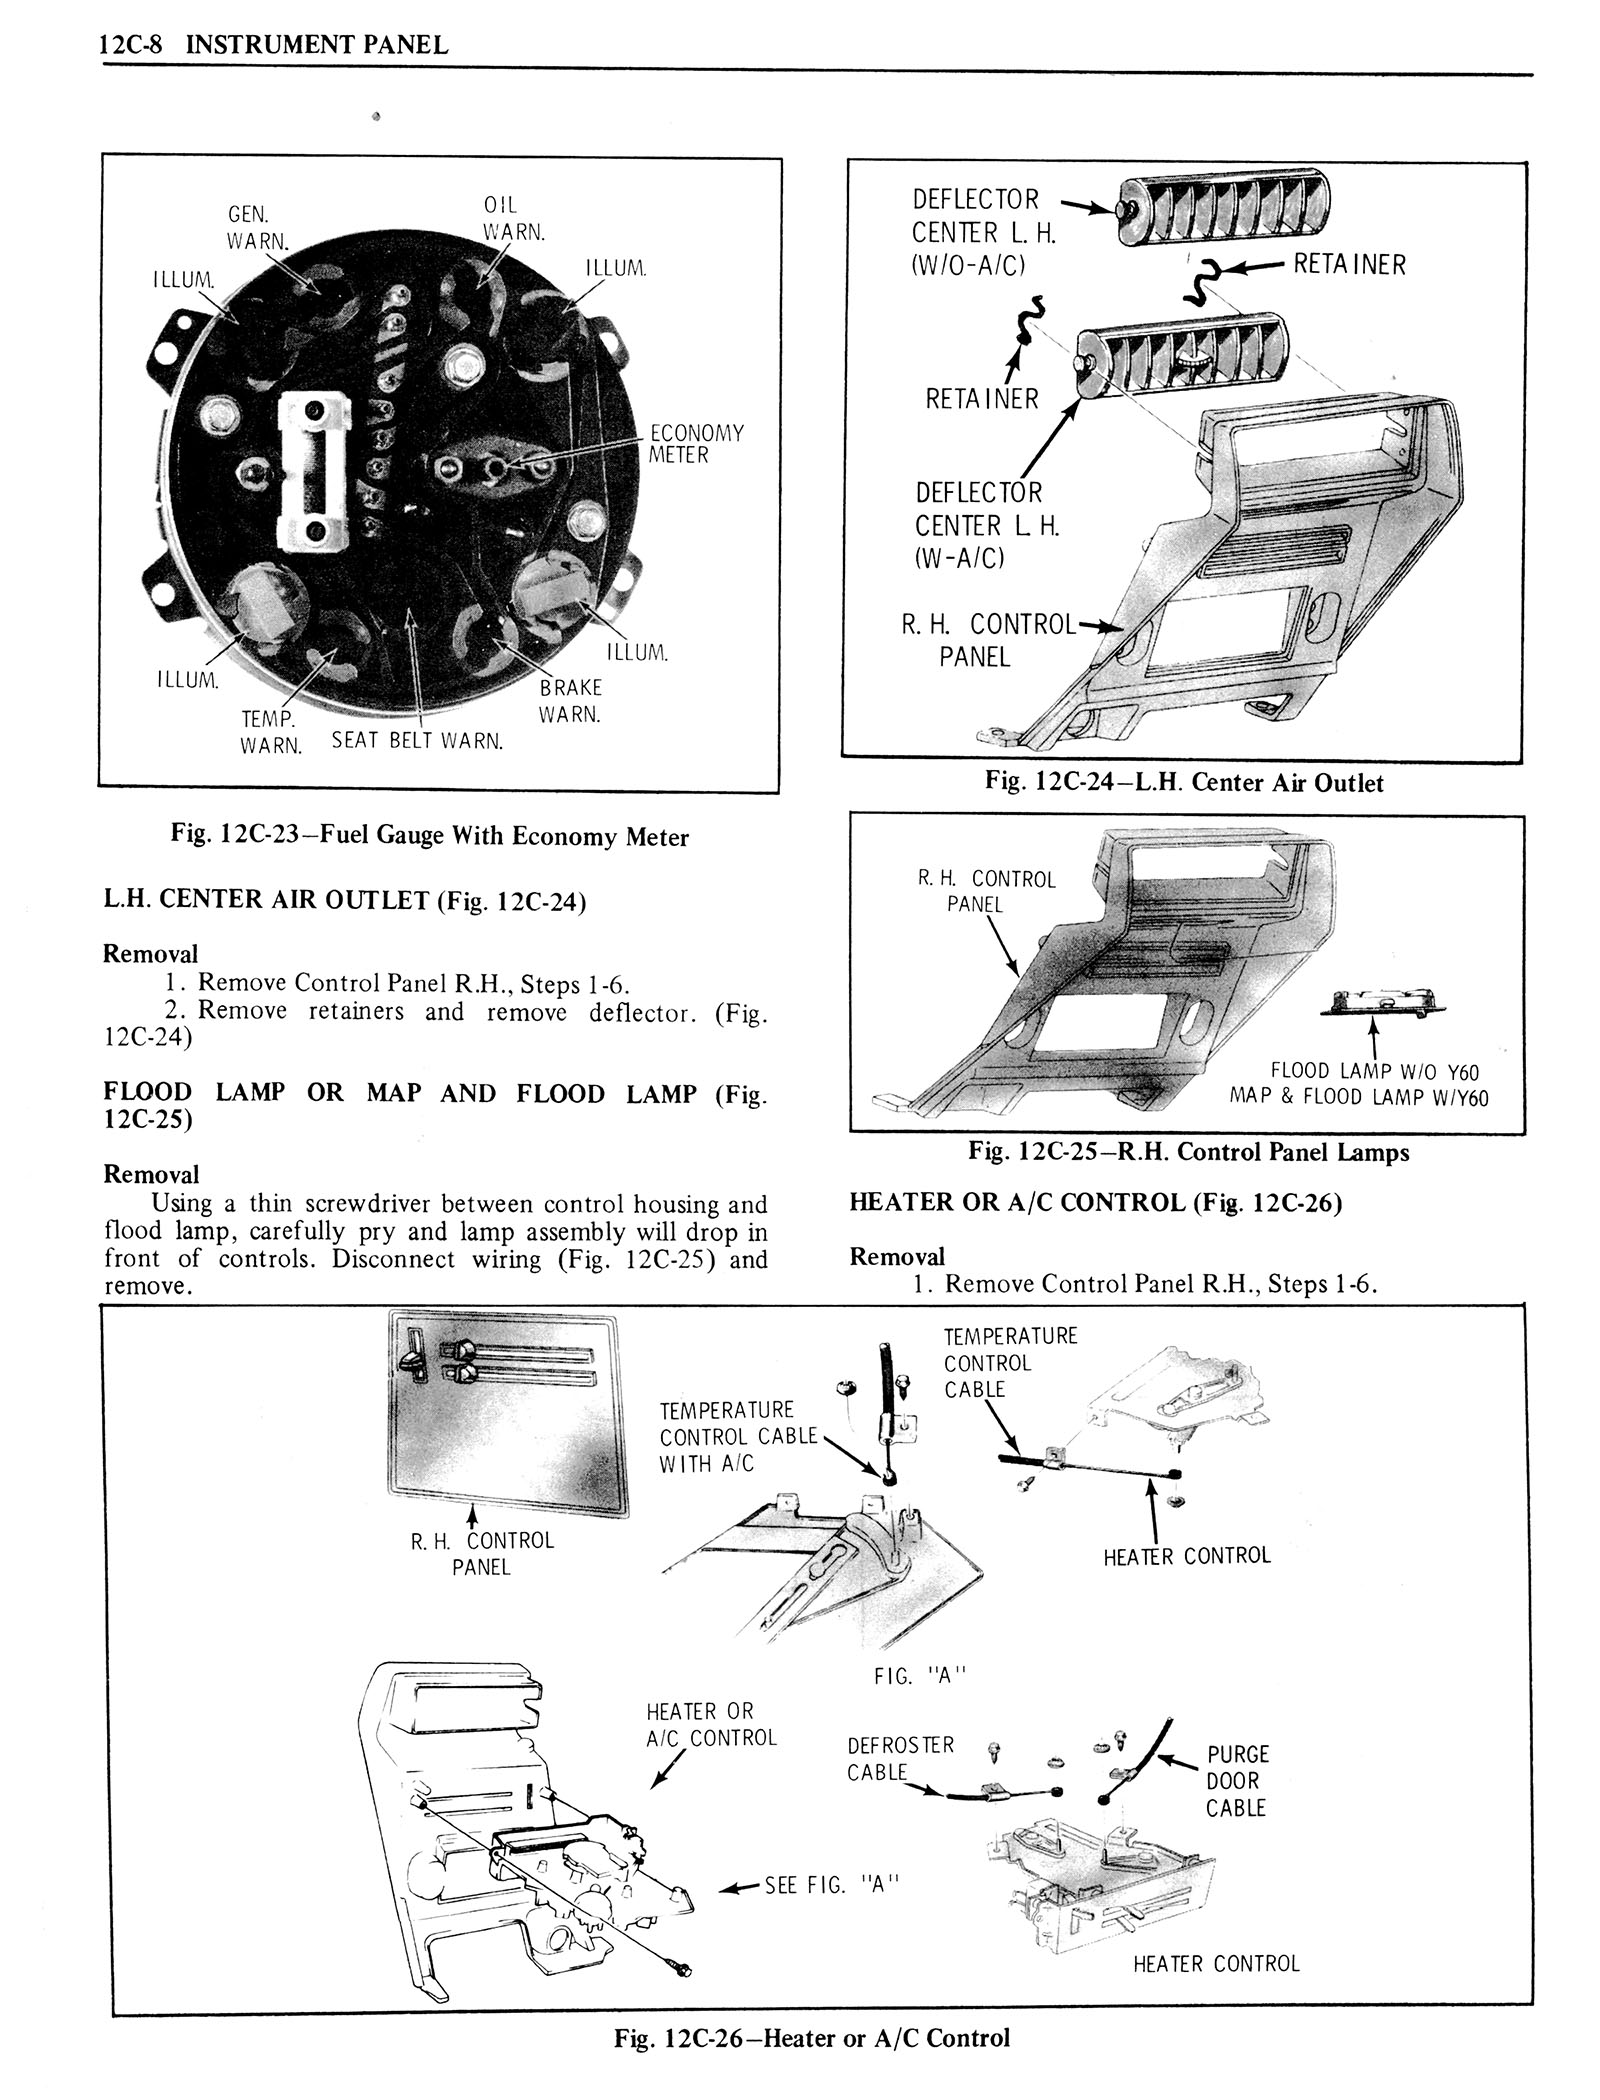 1976 Oldsmobile Service Manual page 1256 of 1390